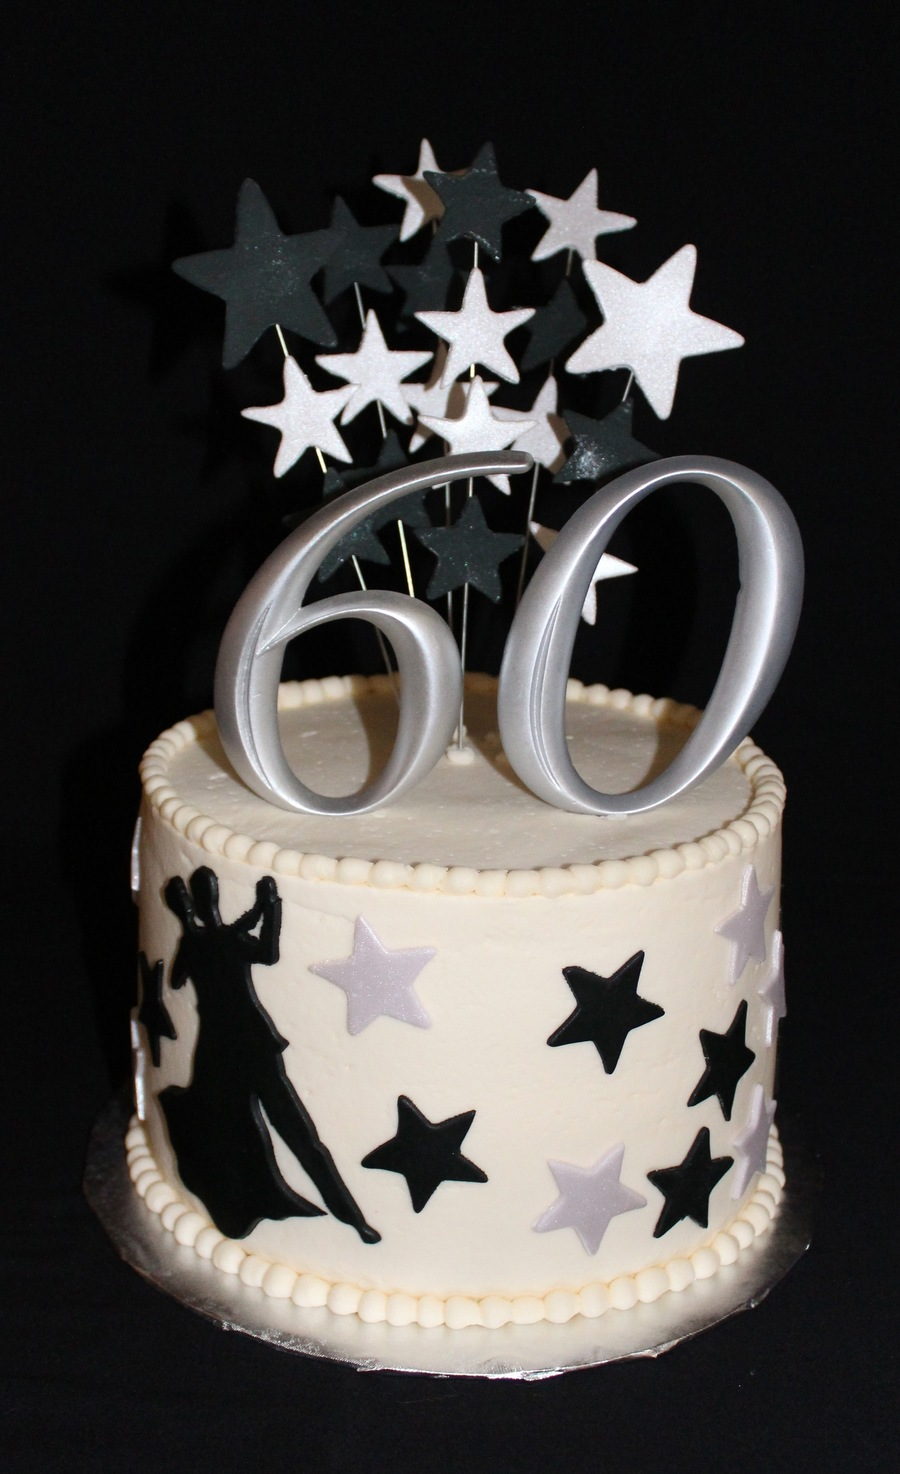 Cake Decorations For A 60th Birthday : 60Th Birthday Cake Lemon Cake With Lemon Curd Filling And ...